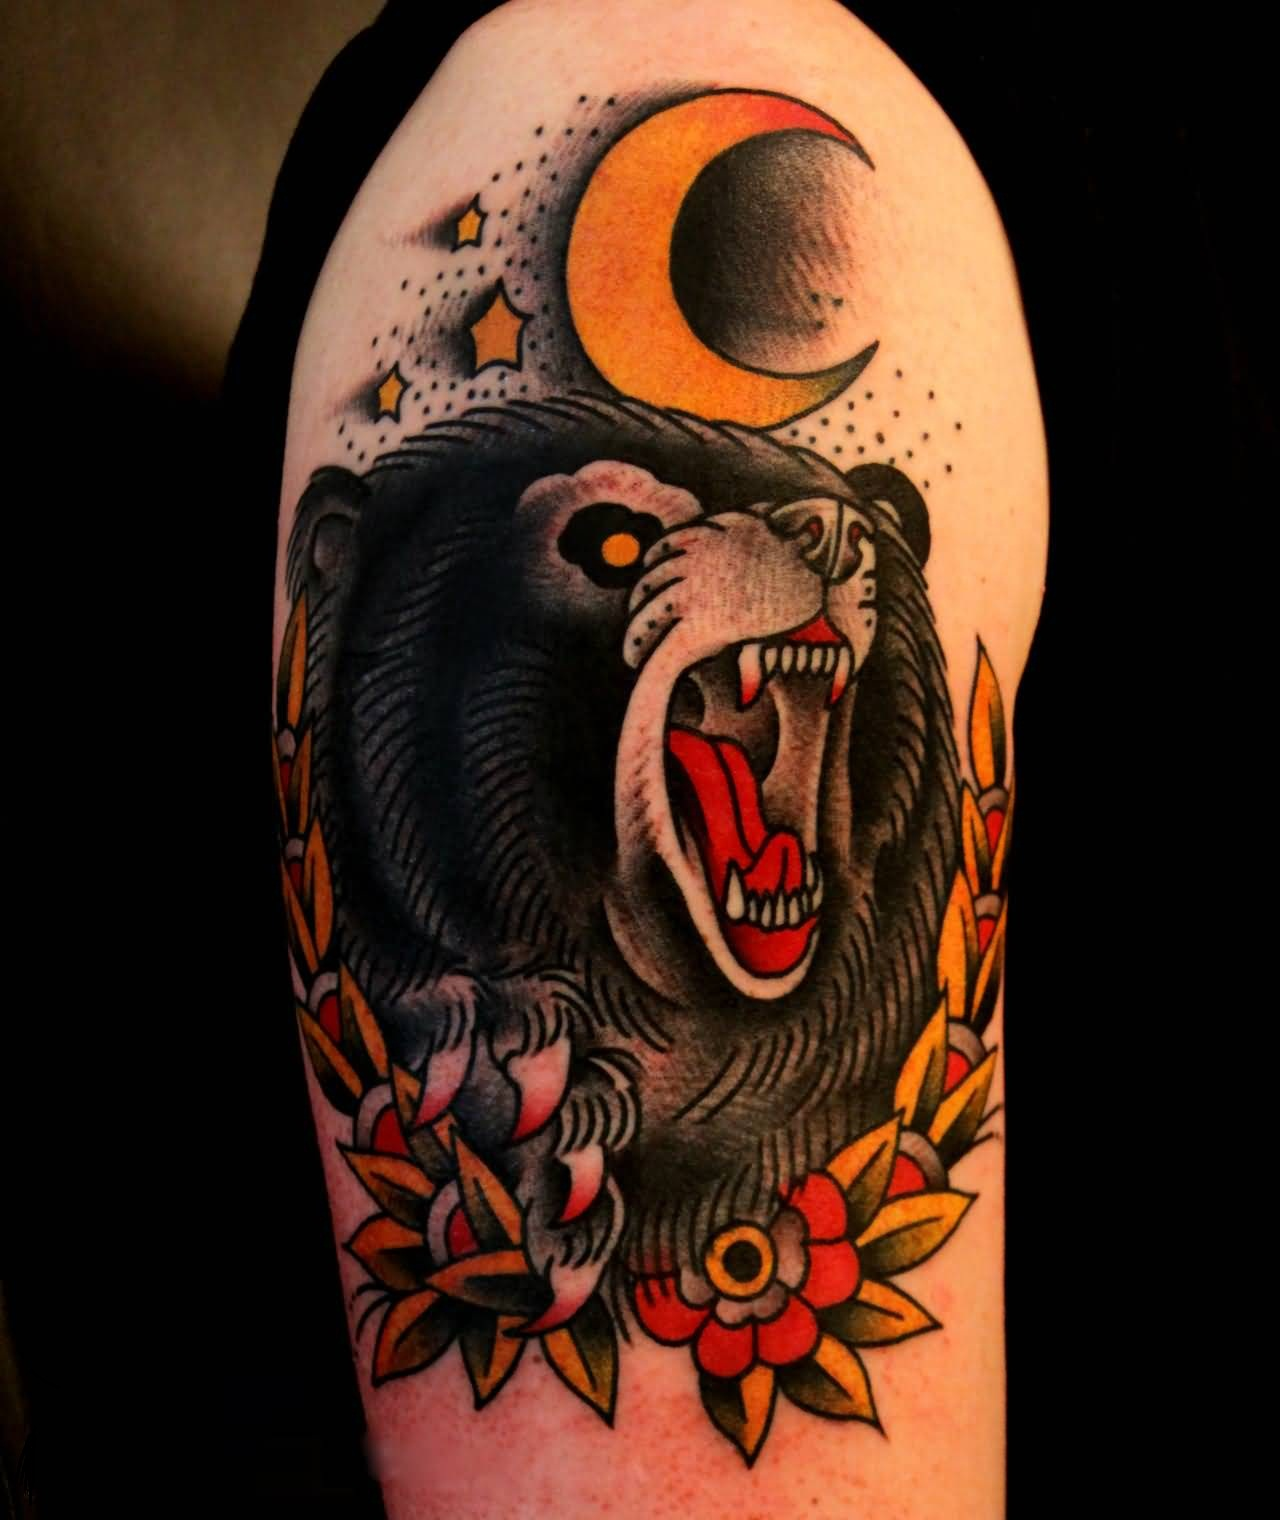 Fantastic Roaring Bear Tattoo With Moon And Tiny Stars Tattoo On Bicep